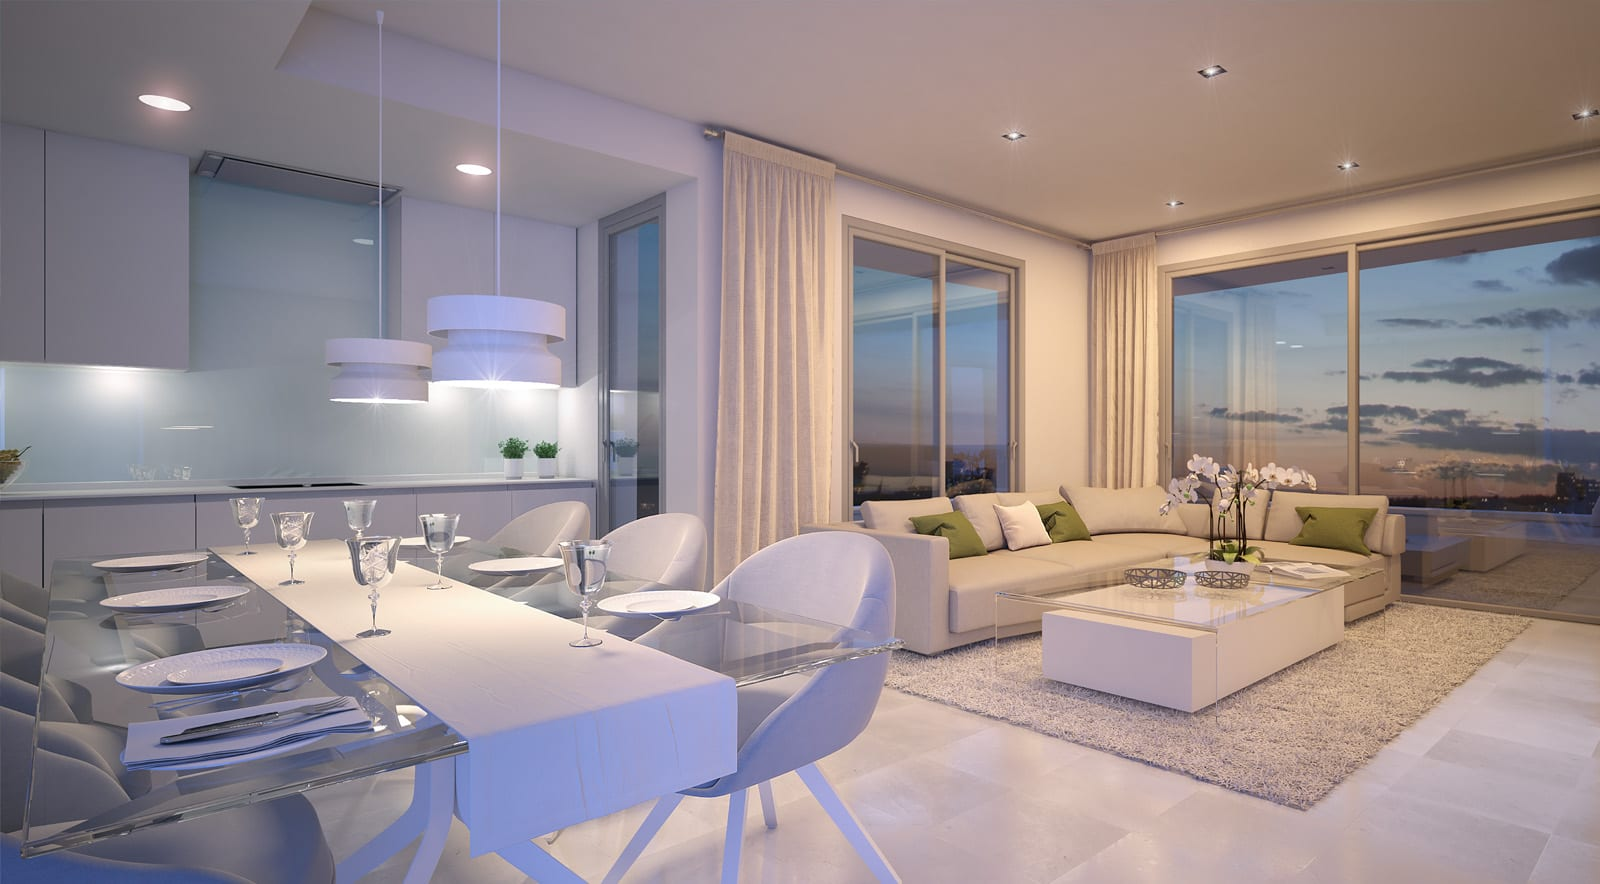 New Golden Mile 63 modern 2 3 and 4 bedroom apts & penthouses Agent4S